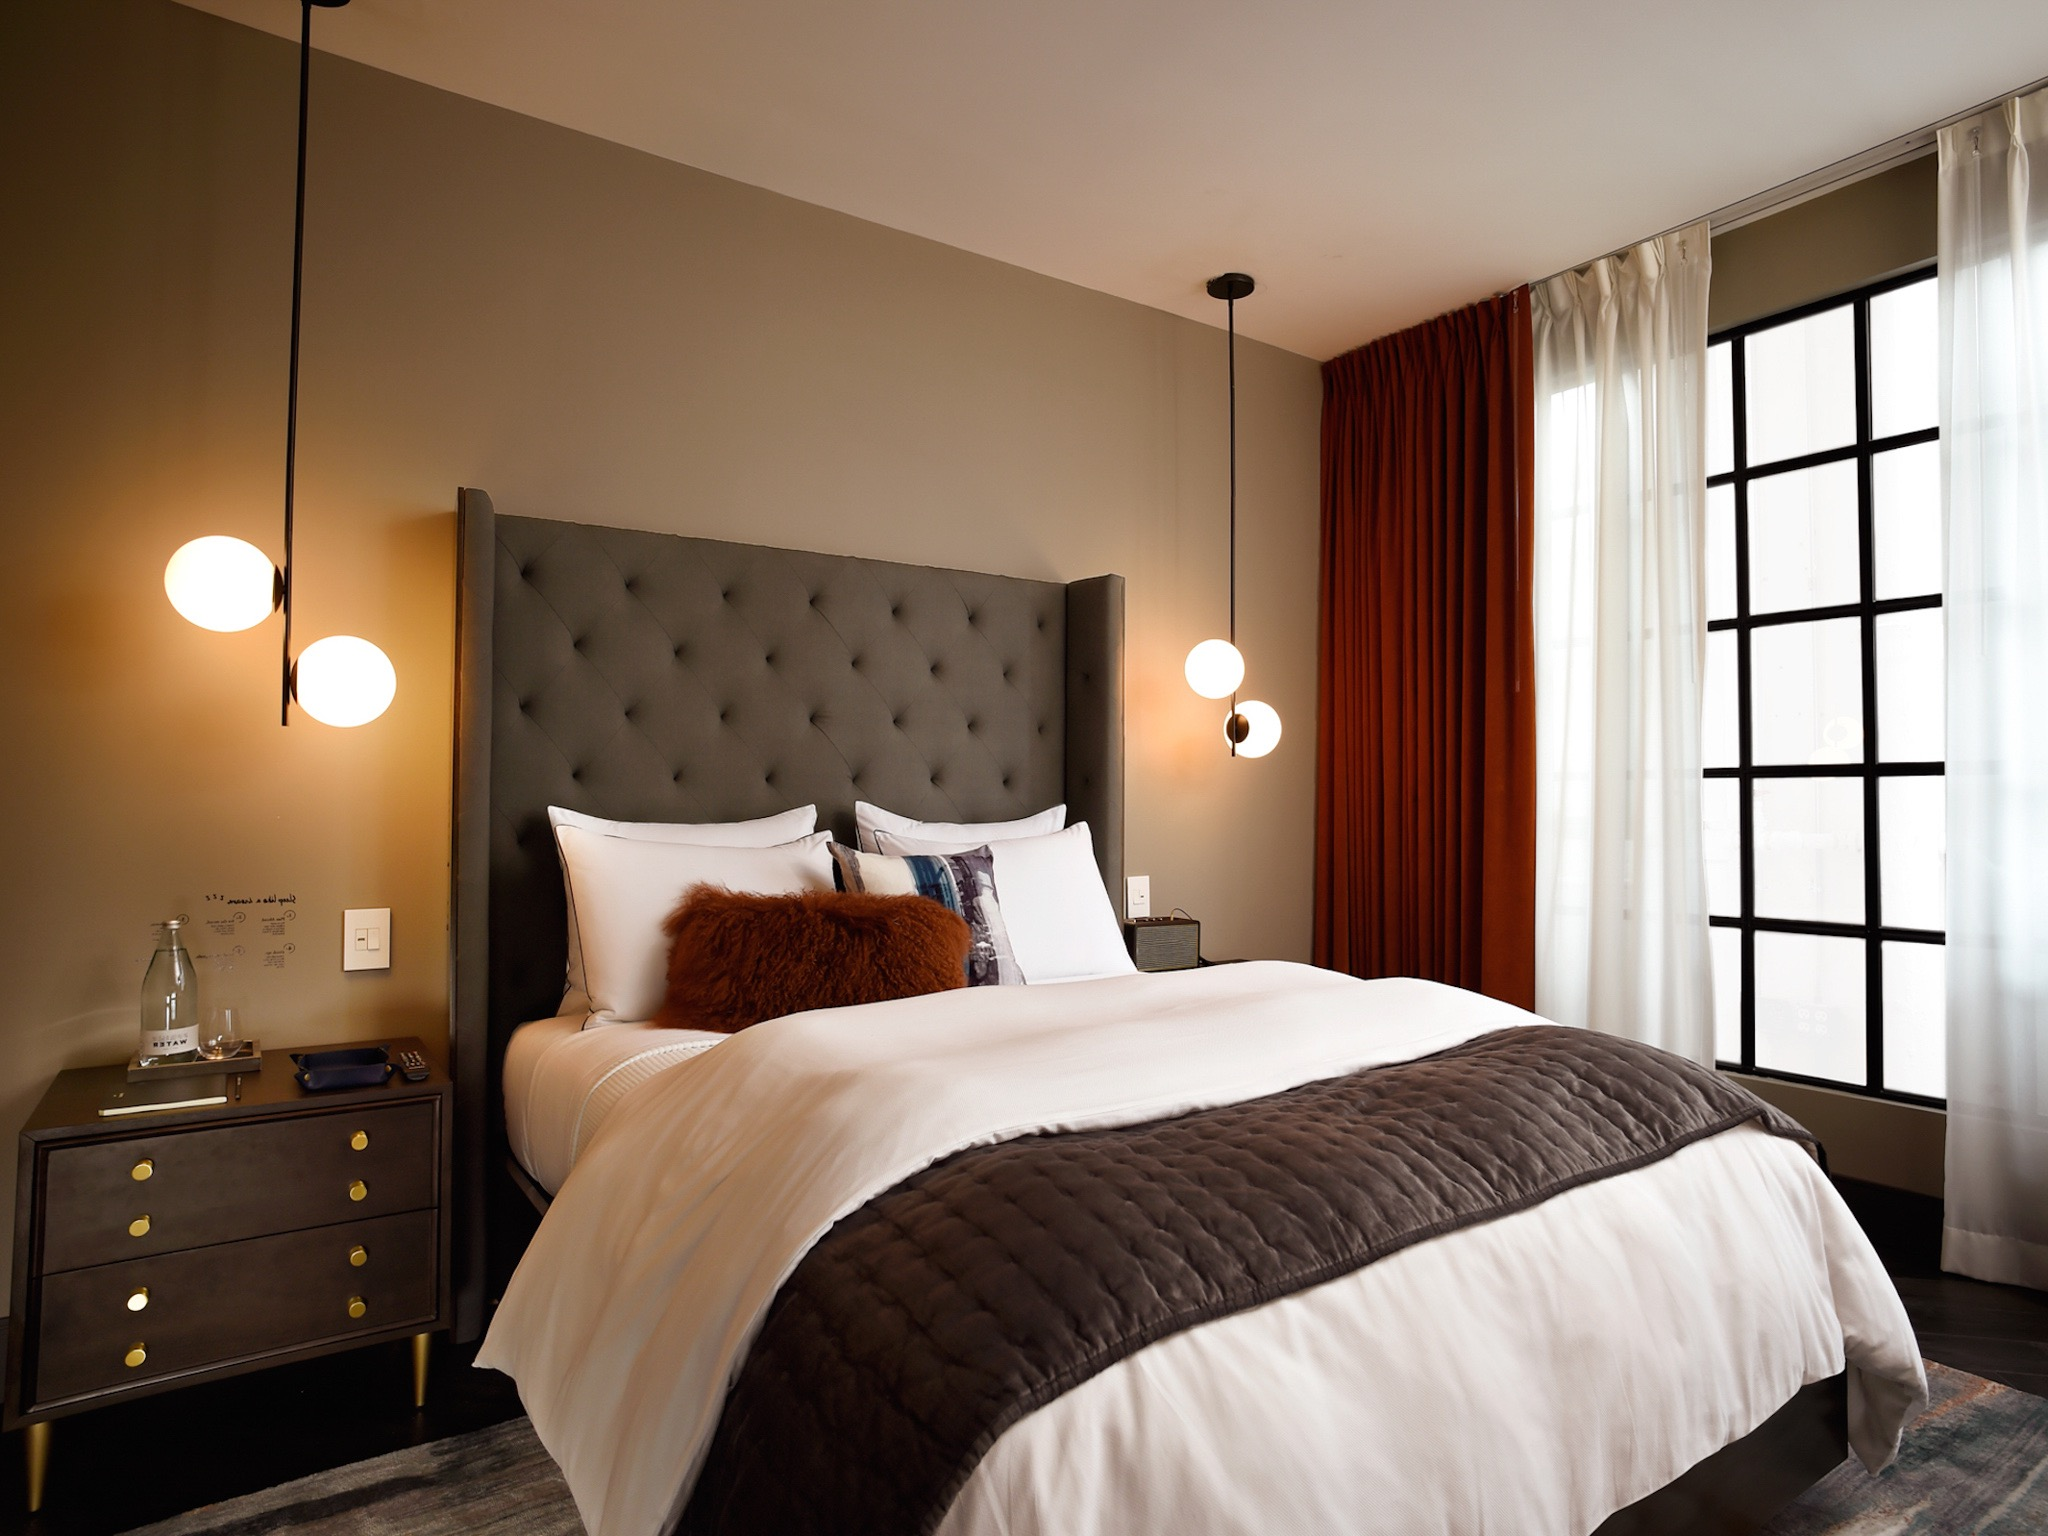 Modern Hotel Style Apartment Bedroom With Globe Pendants And Tufted Headboard (Image 21 of 25)